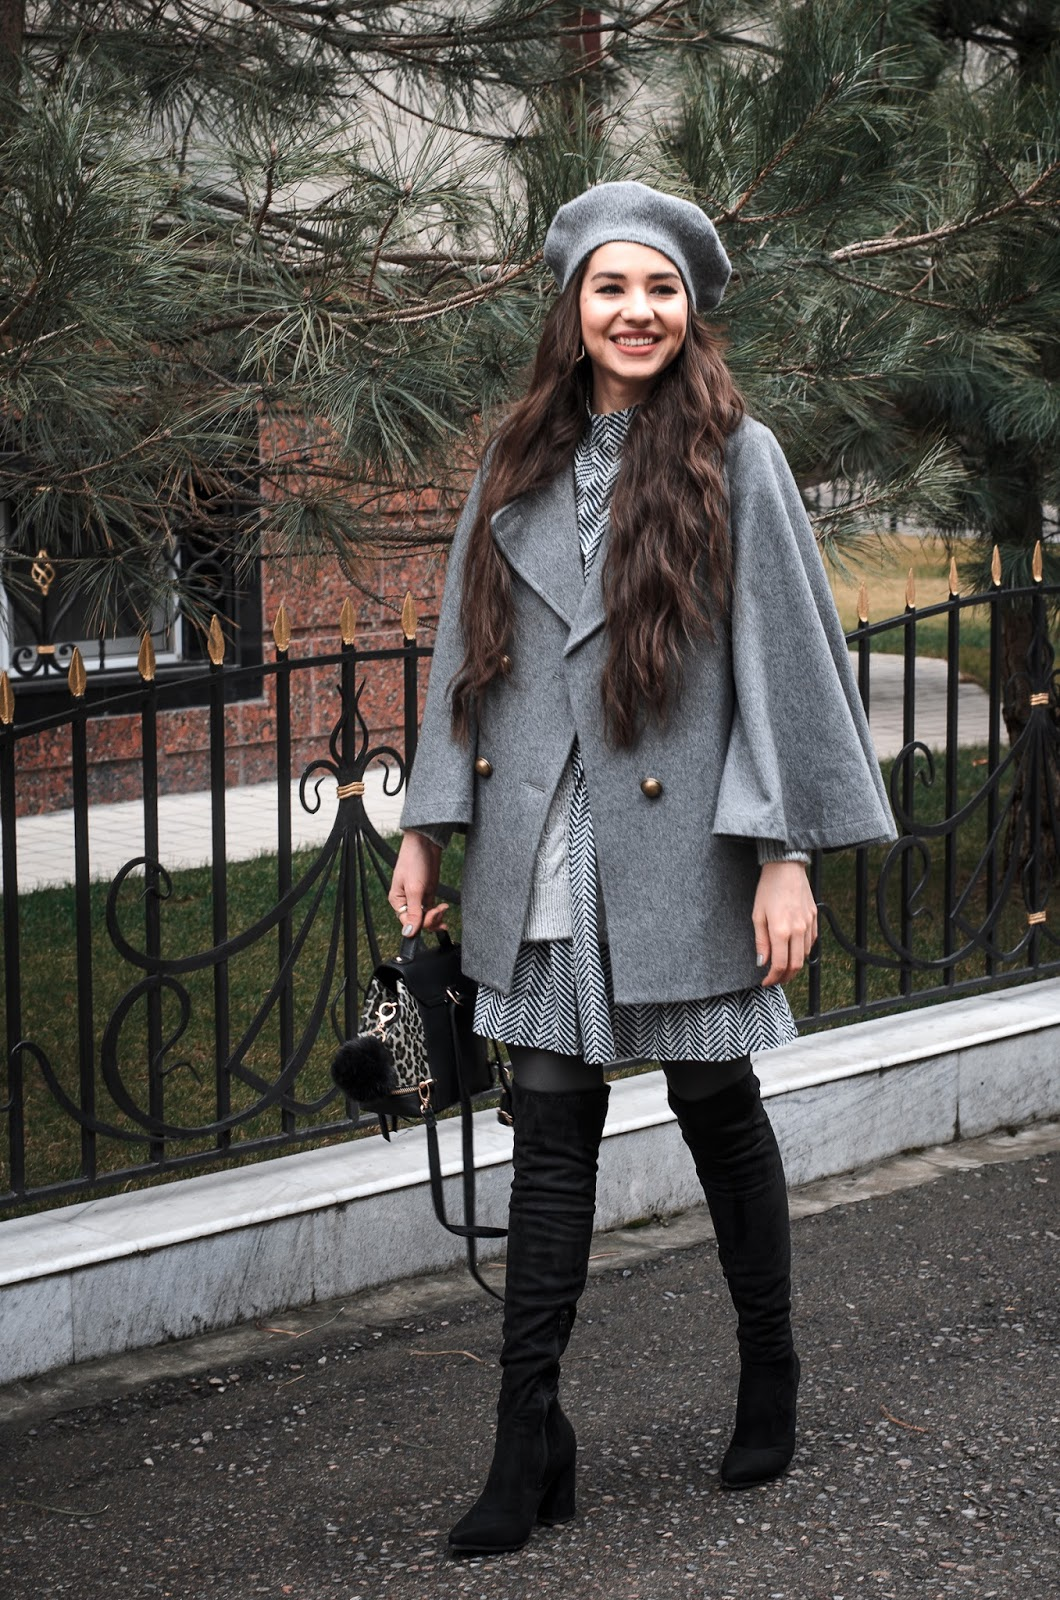 fashion blogger diyorasnotes over knee boots shift dress knitted cardigan beret grey outfit